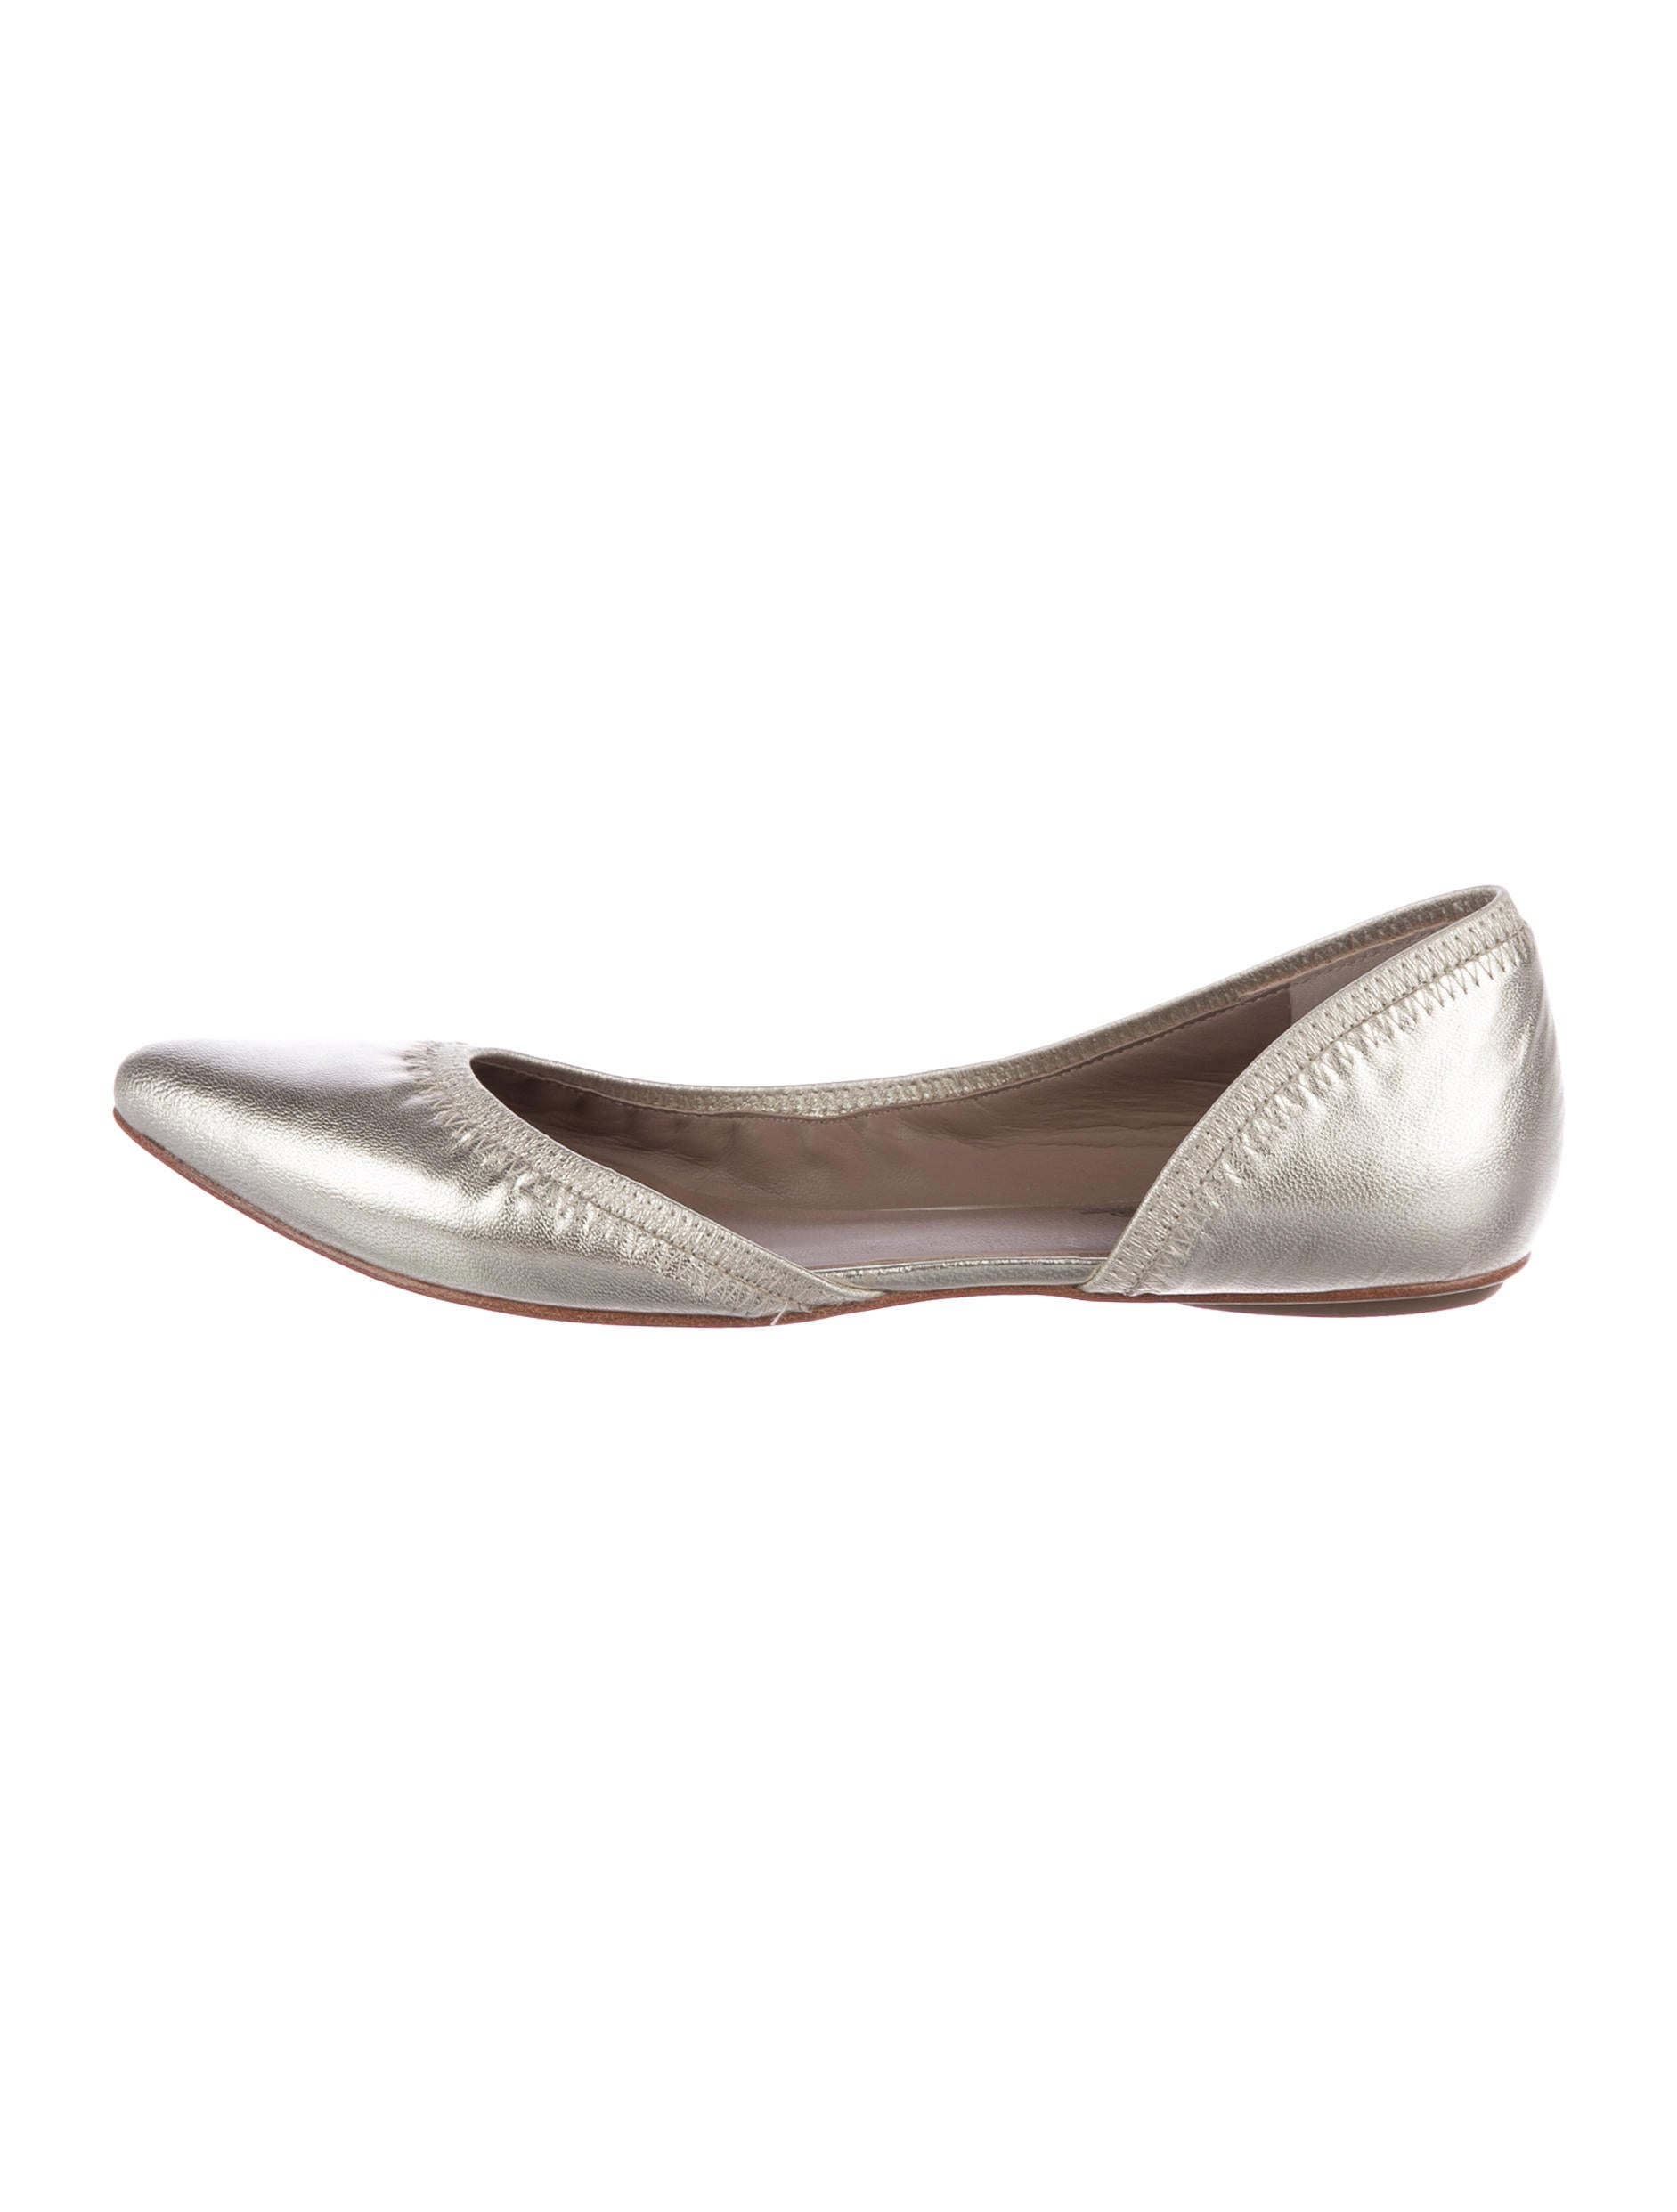 buy cheap low shipping fee Belle by Sigerson Morrison Ice Pointed-Toe Flats w/ Tags cost best store to get Inexpensive sale online clearance footlocker pictures qkmDkv3lz